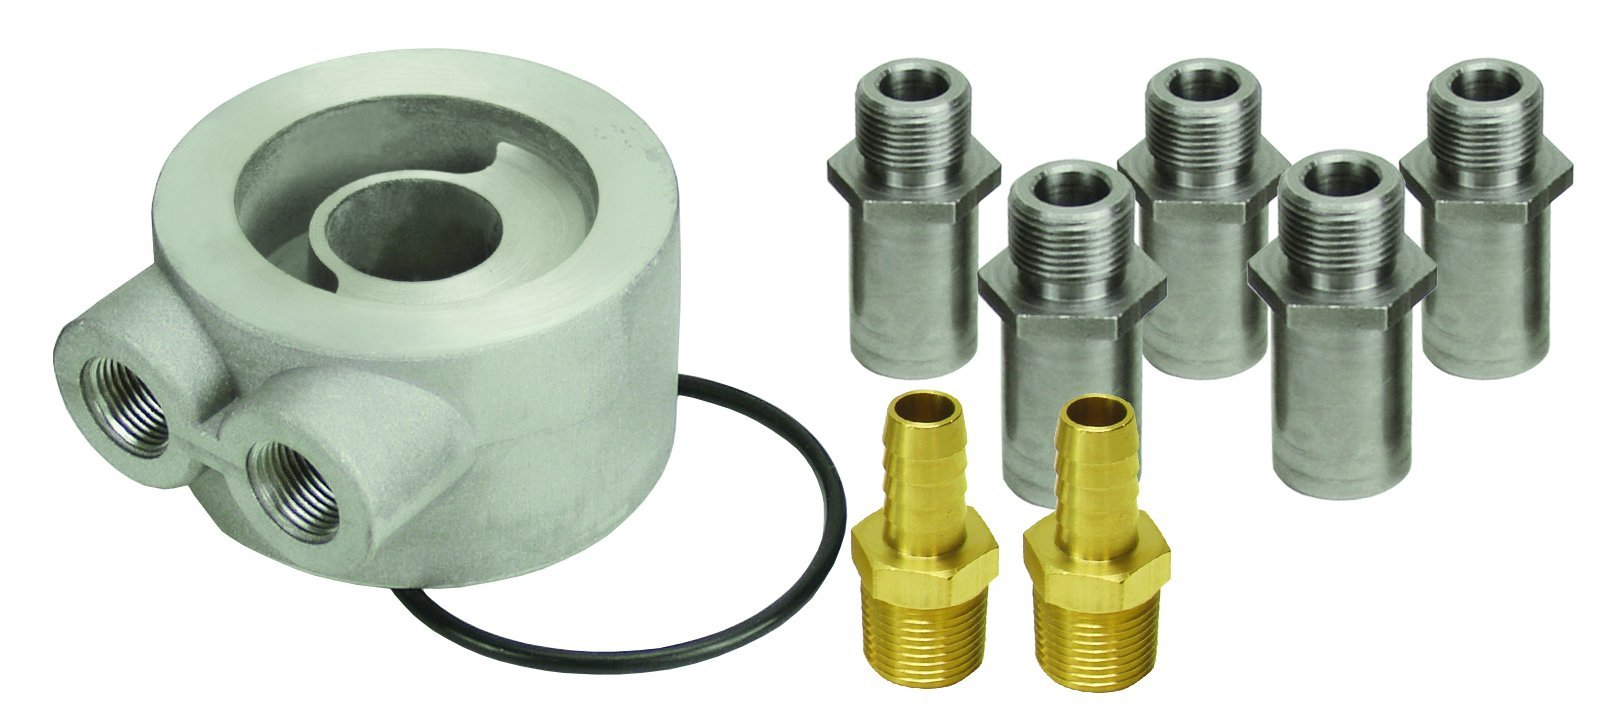 Derale 15735 Non-Thermostatic Sandwich Adapter Kit by Derale